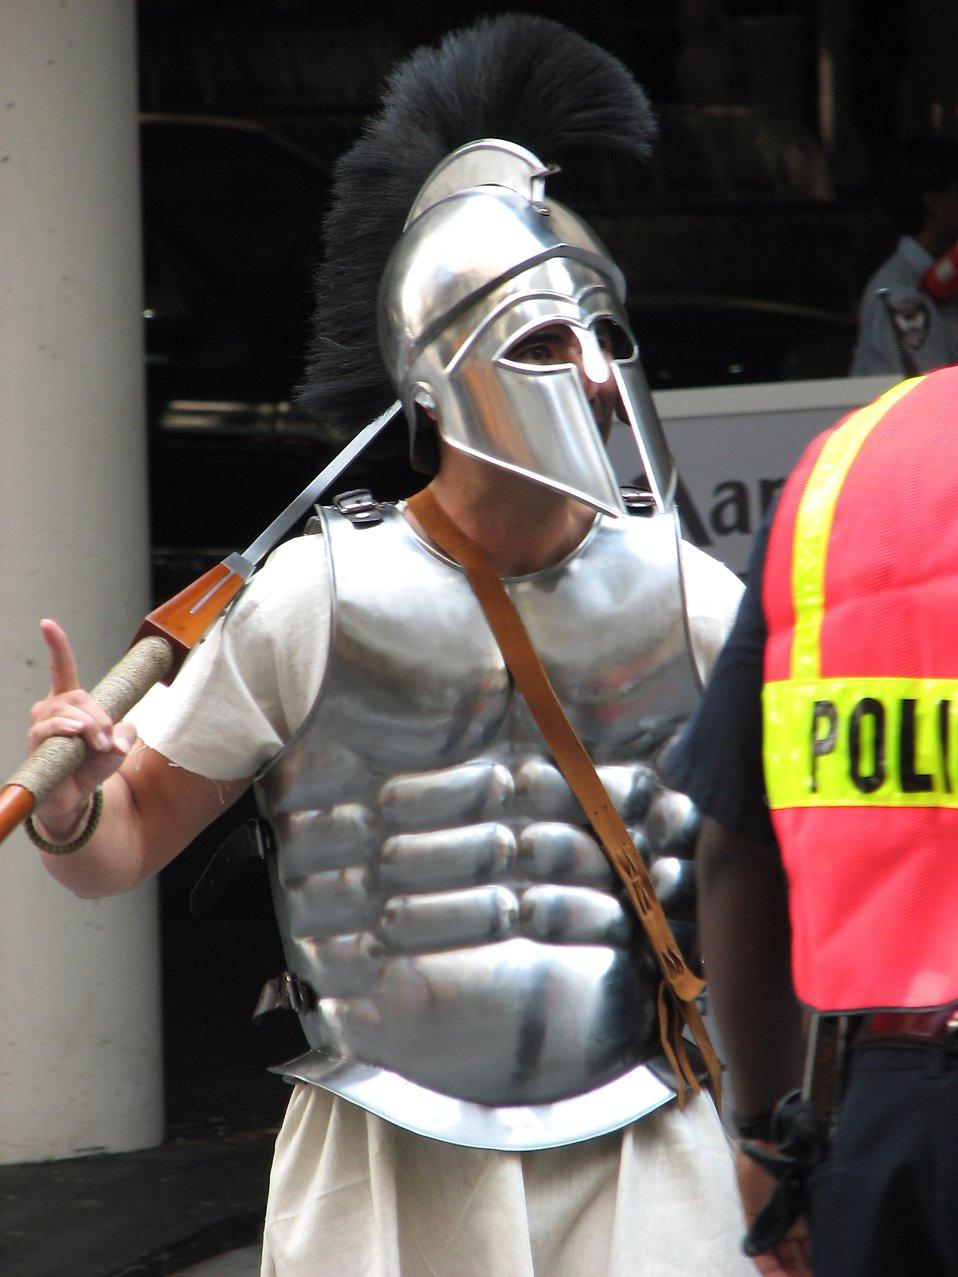 Man in armor with a police officer at Dragoncon 2008 : Free Stock Photo